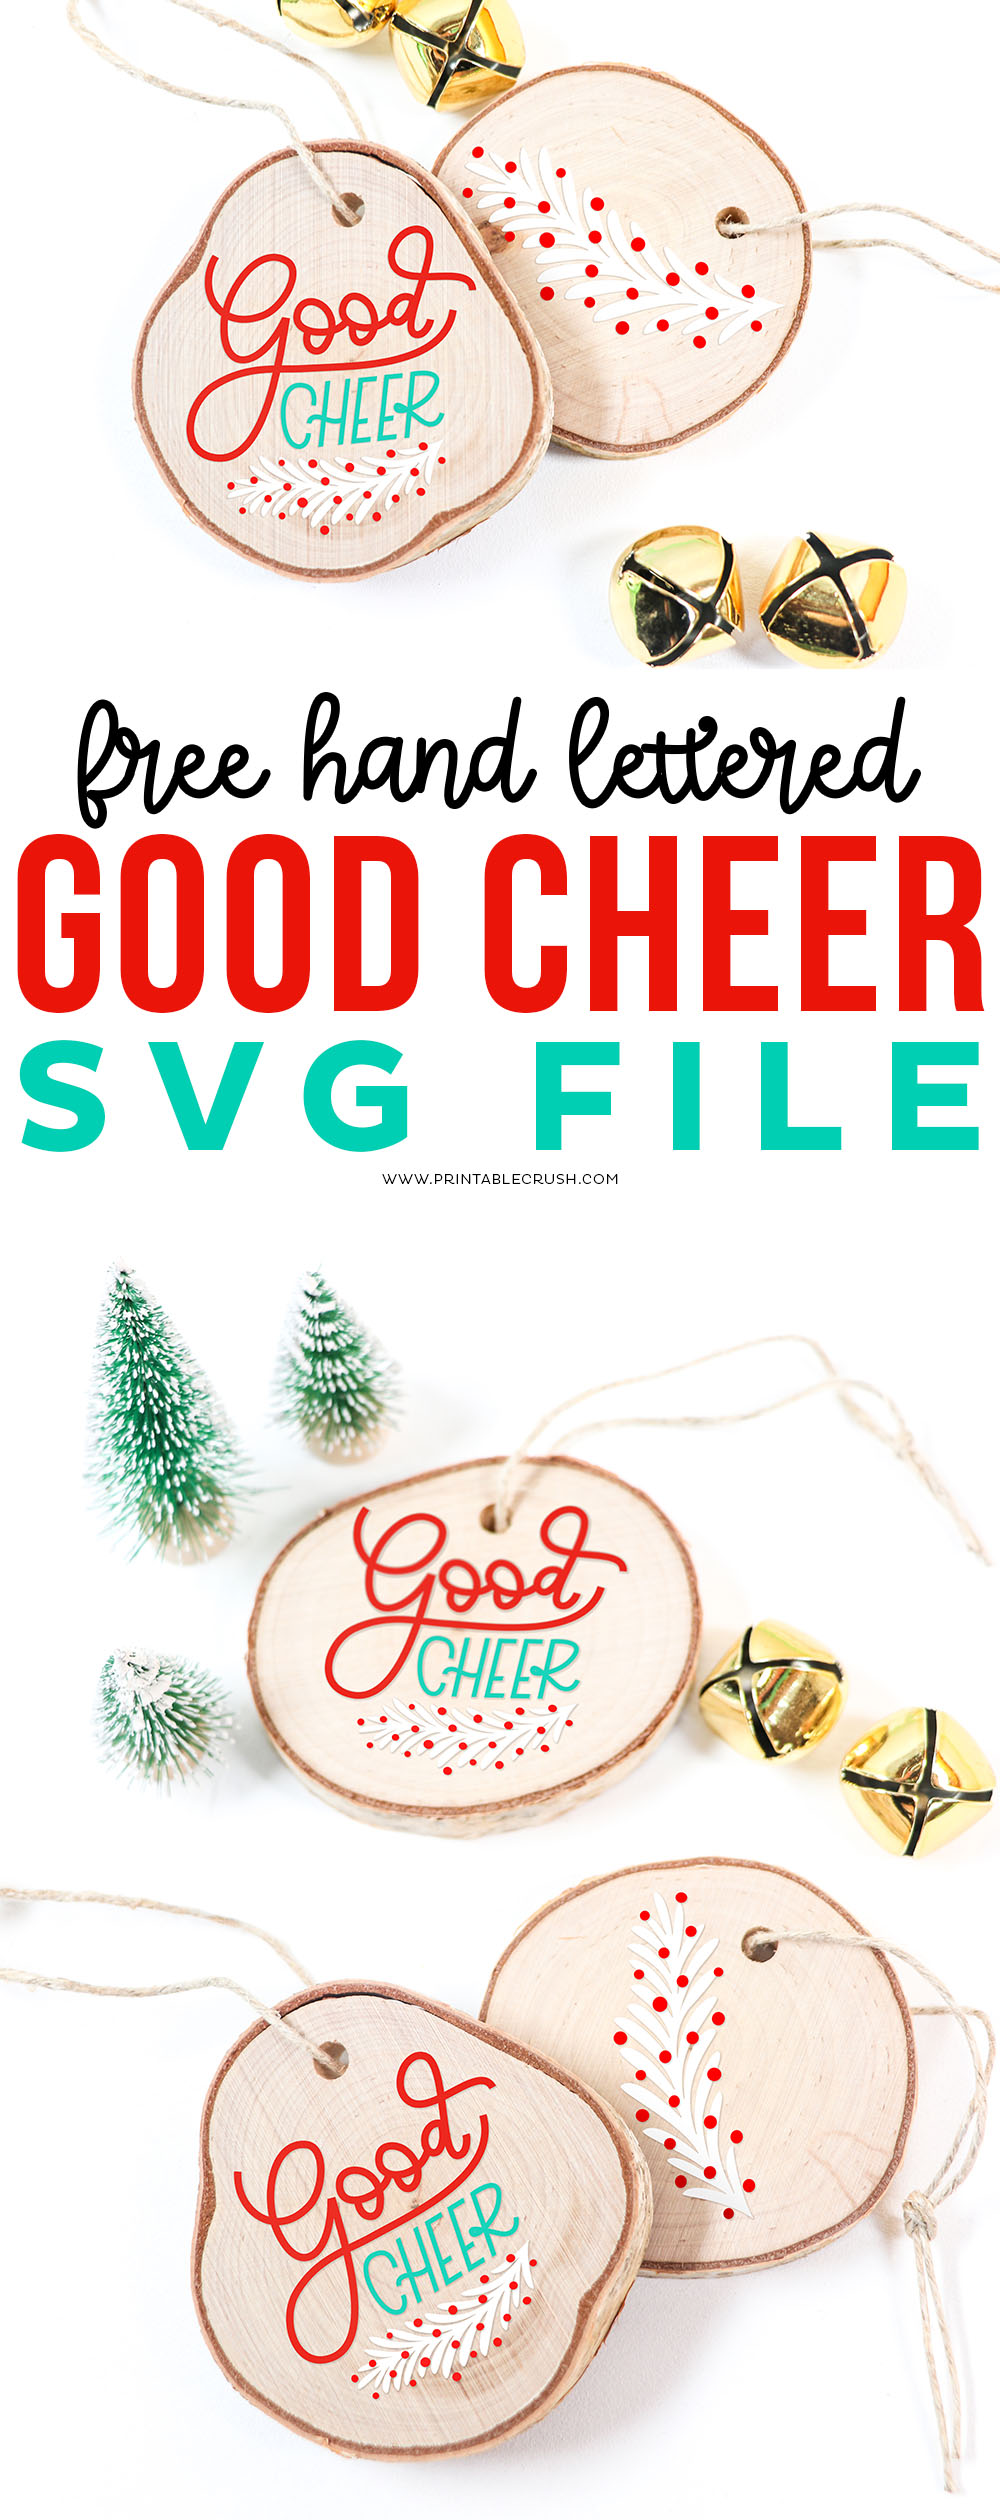 Free Good Cheer Hand Lettered Holiday SVG File - Printable Crush